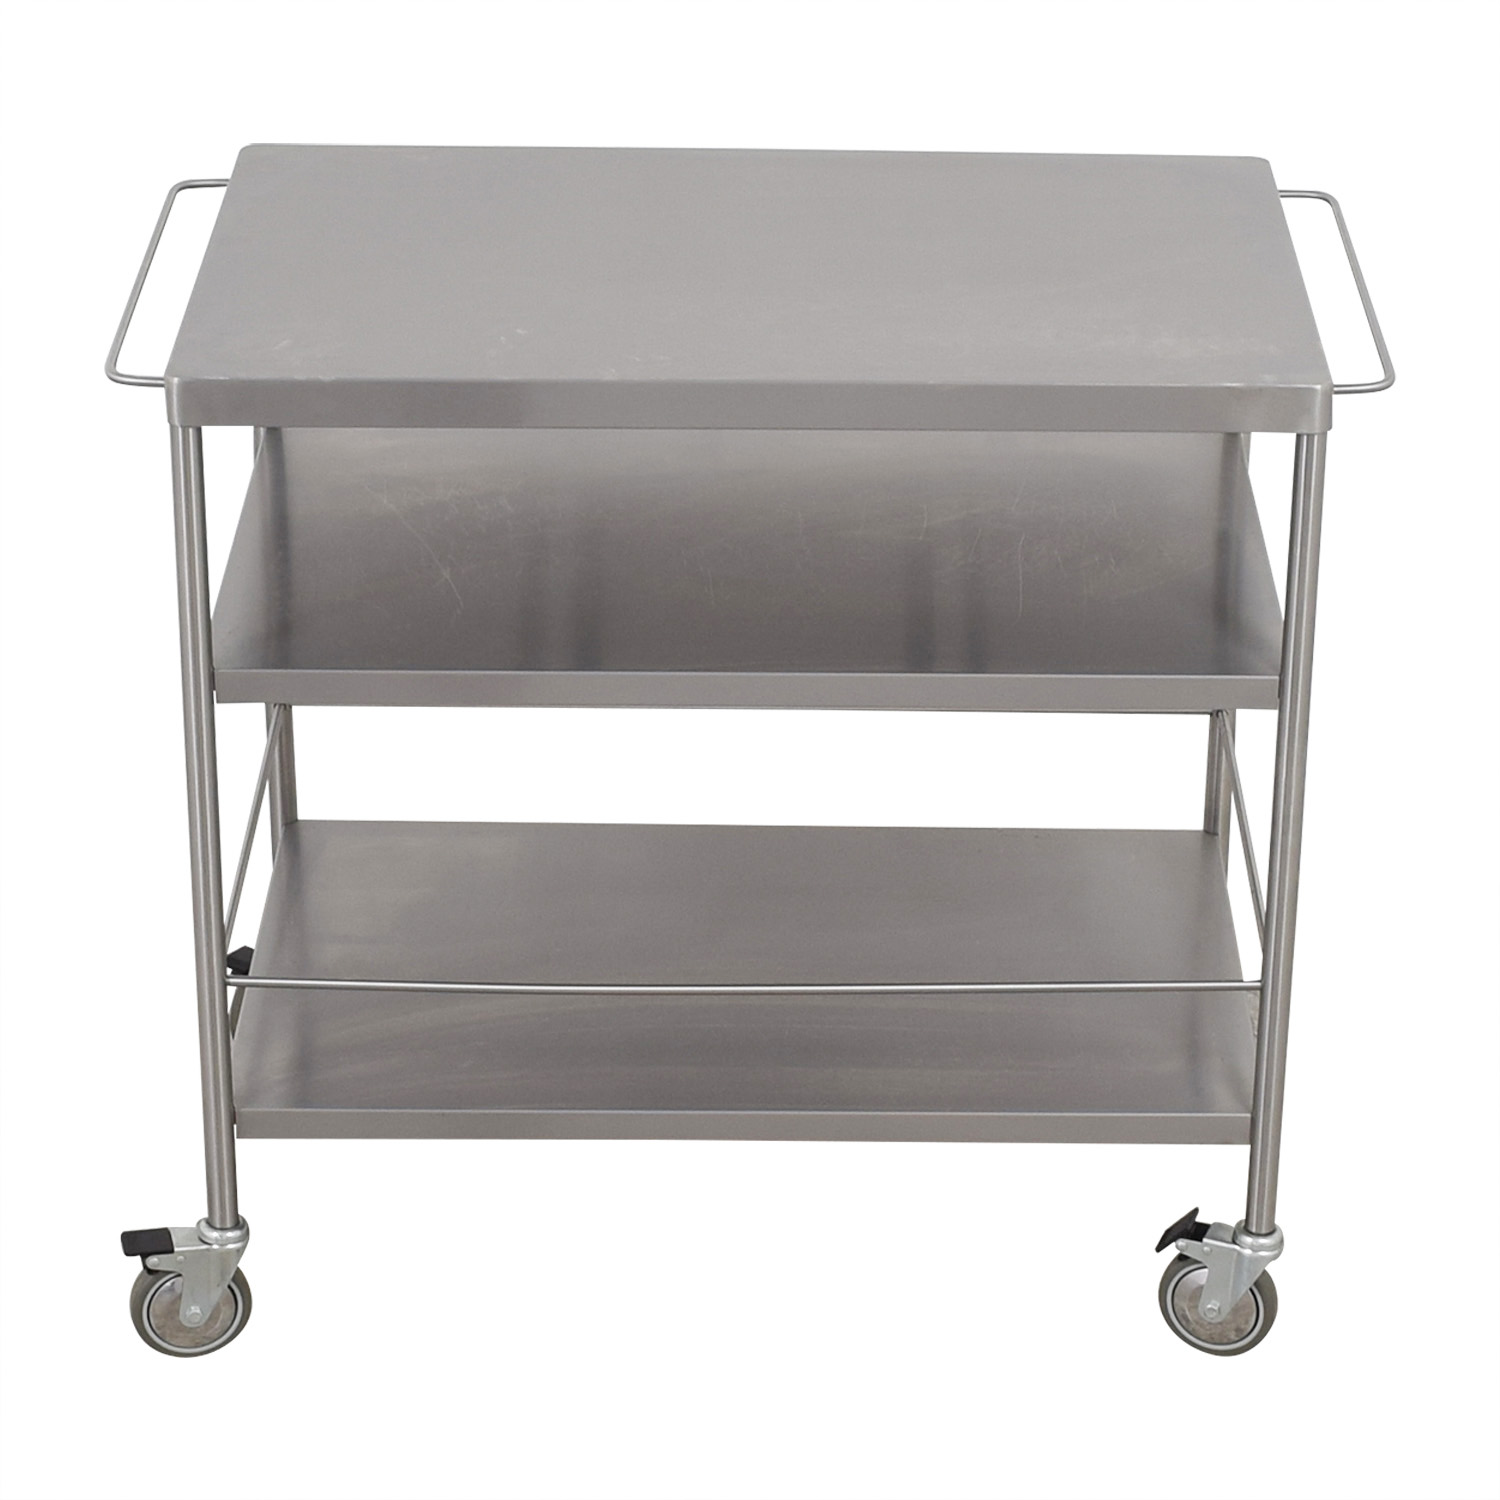 Beau ... Buy IKEA Stainless Steel Kitchen Cart IKEA ...